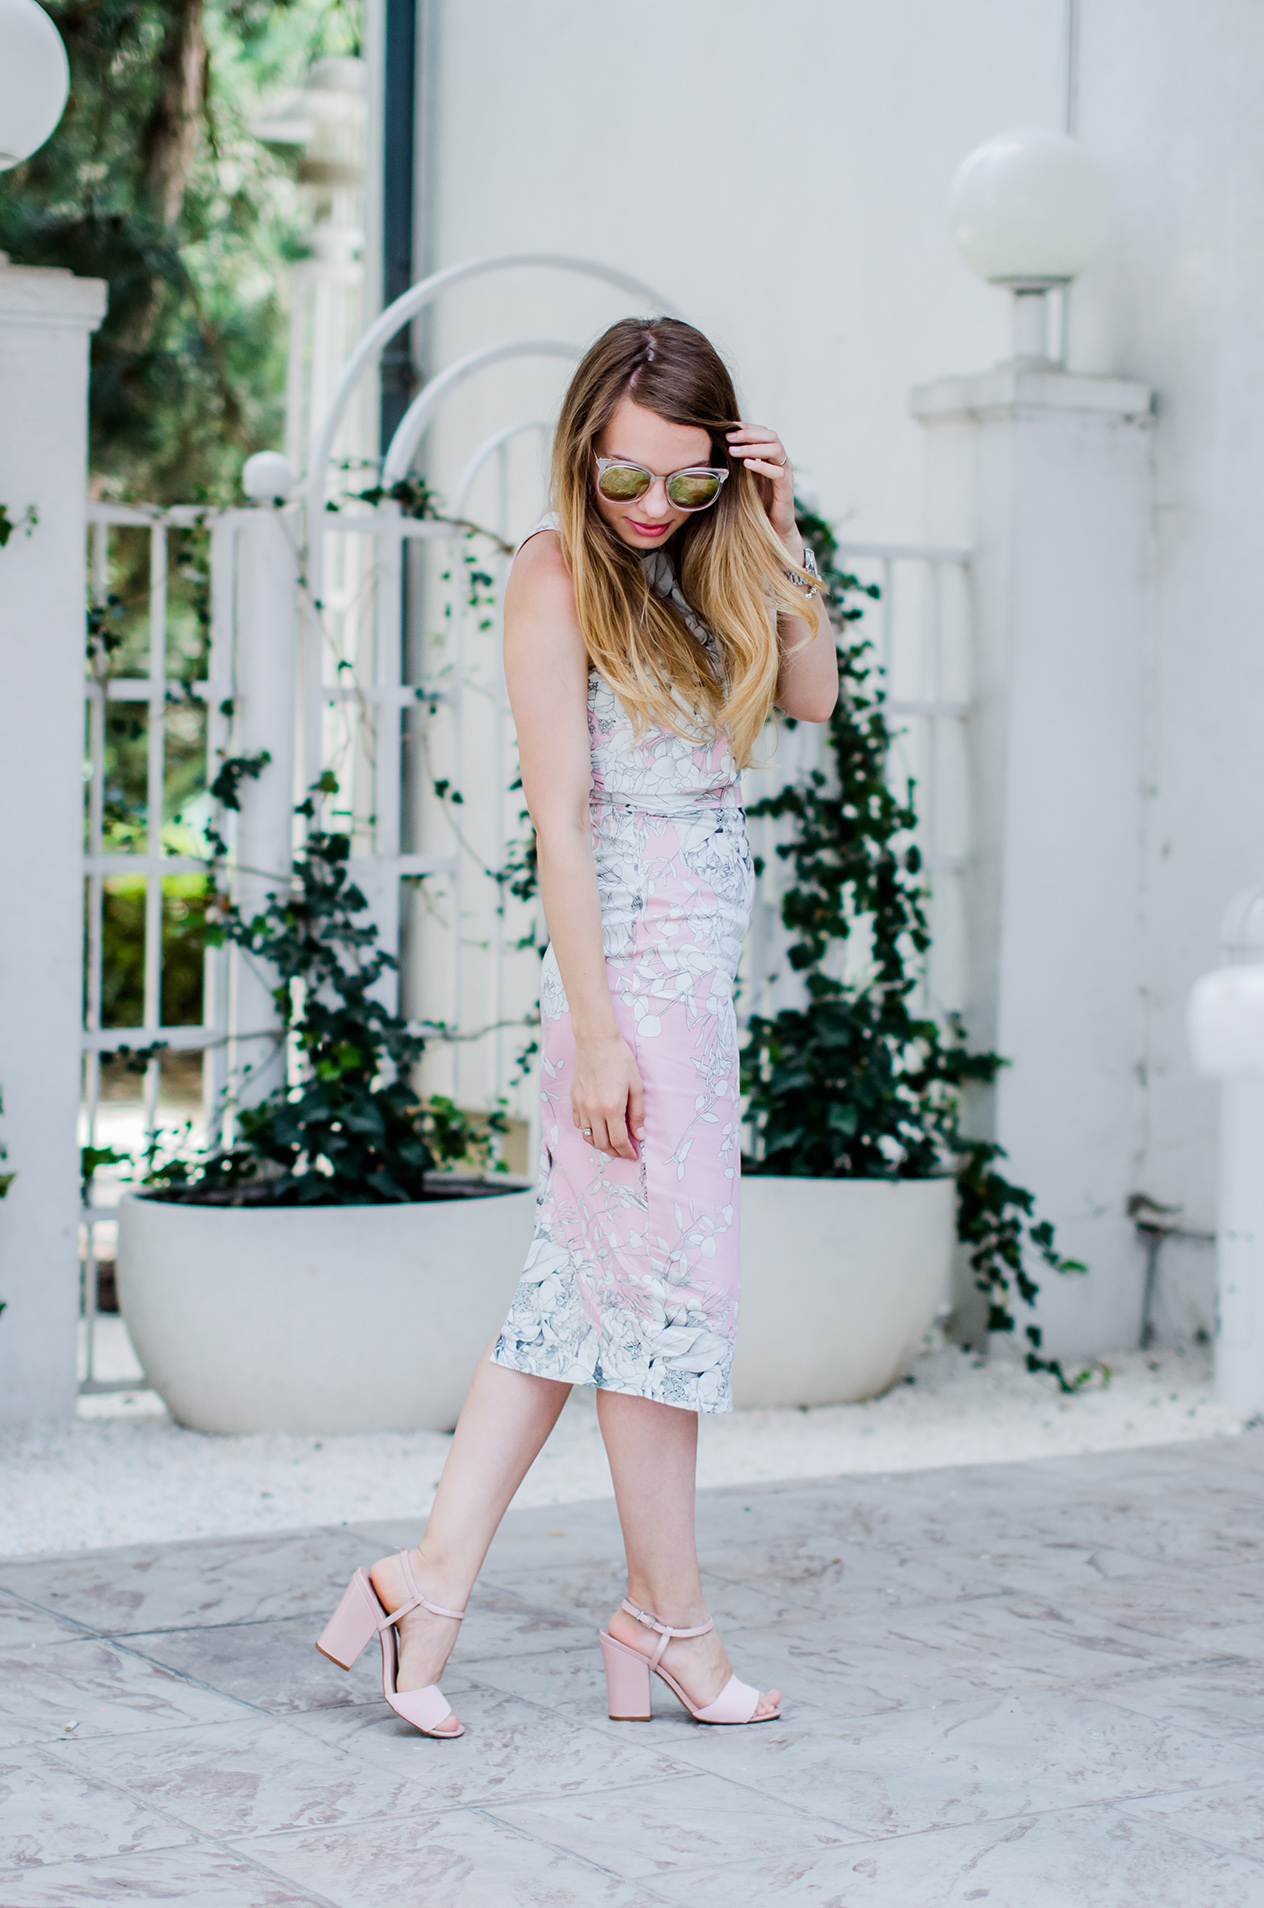 bodycon-midi-pink-dress-pink-sandals-zerouv-sunglasses-fashion-pink-wish-blog (3)